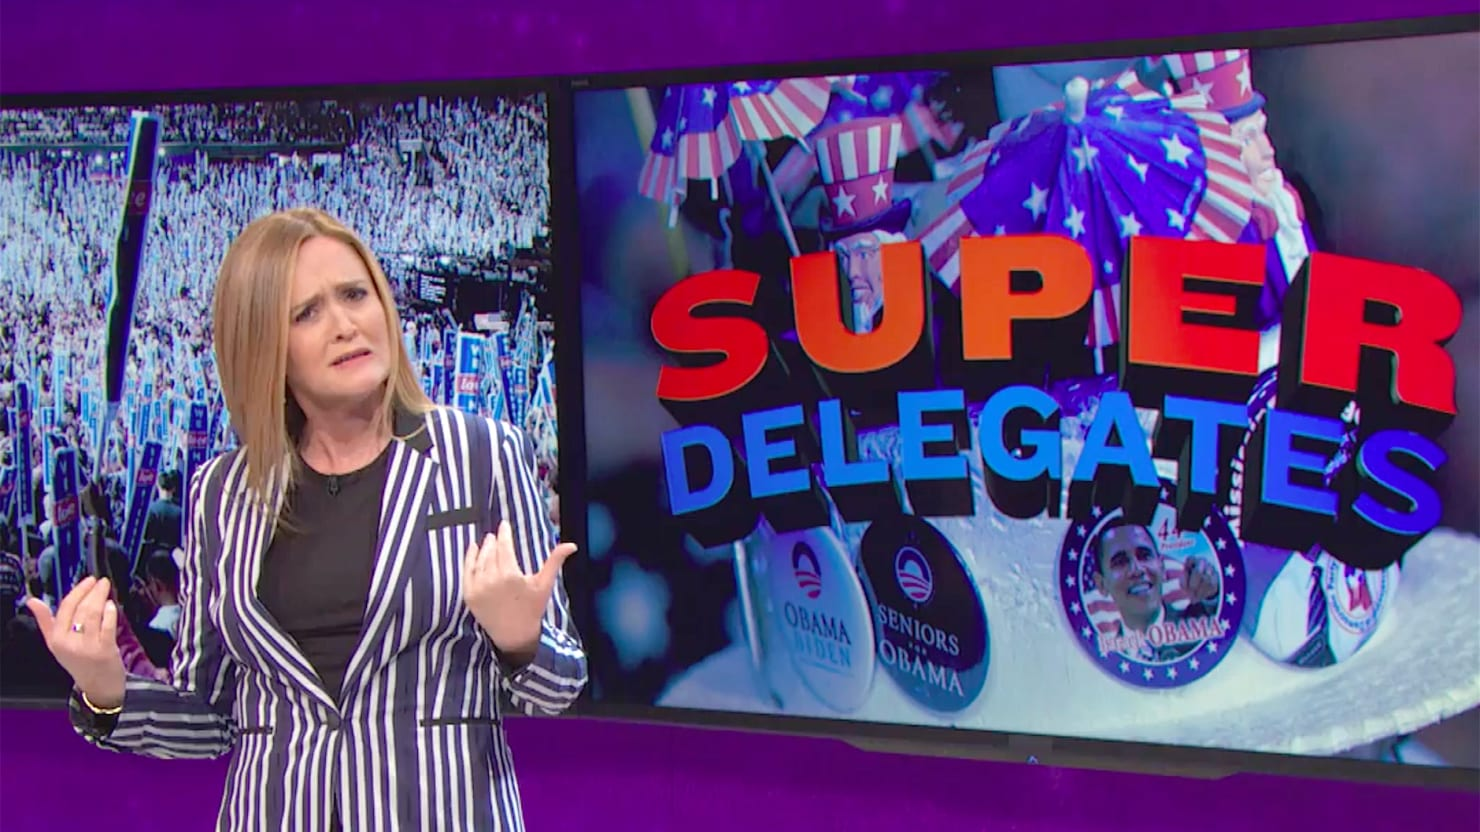 Samantha Bee Defends Superdelegates: They'll Drop Hillary So Fast for Bernie